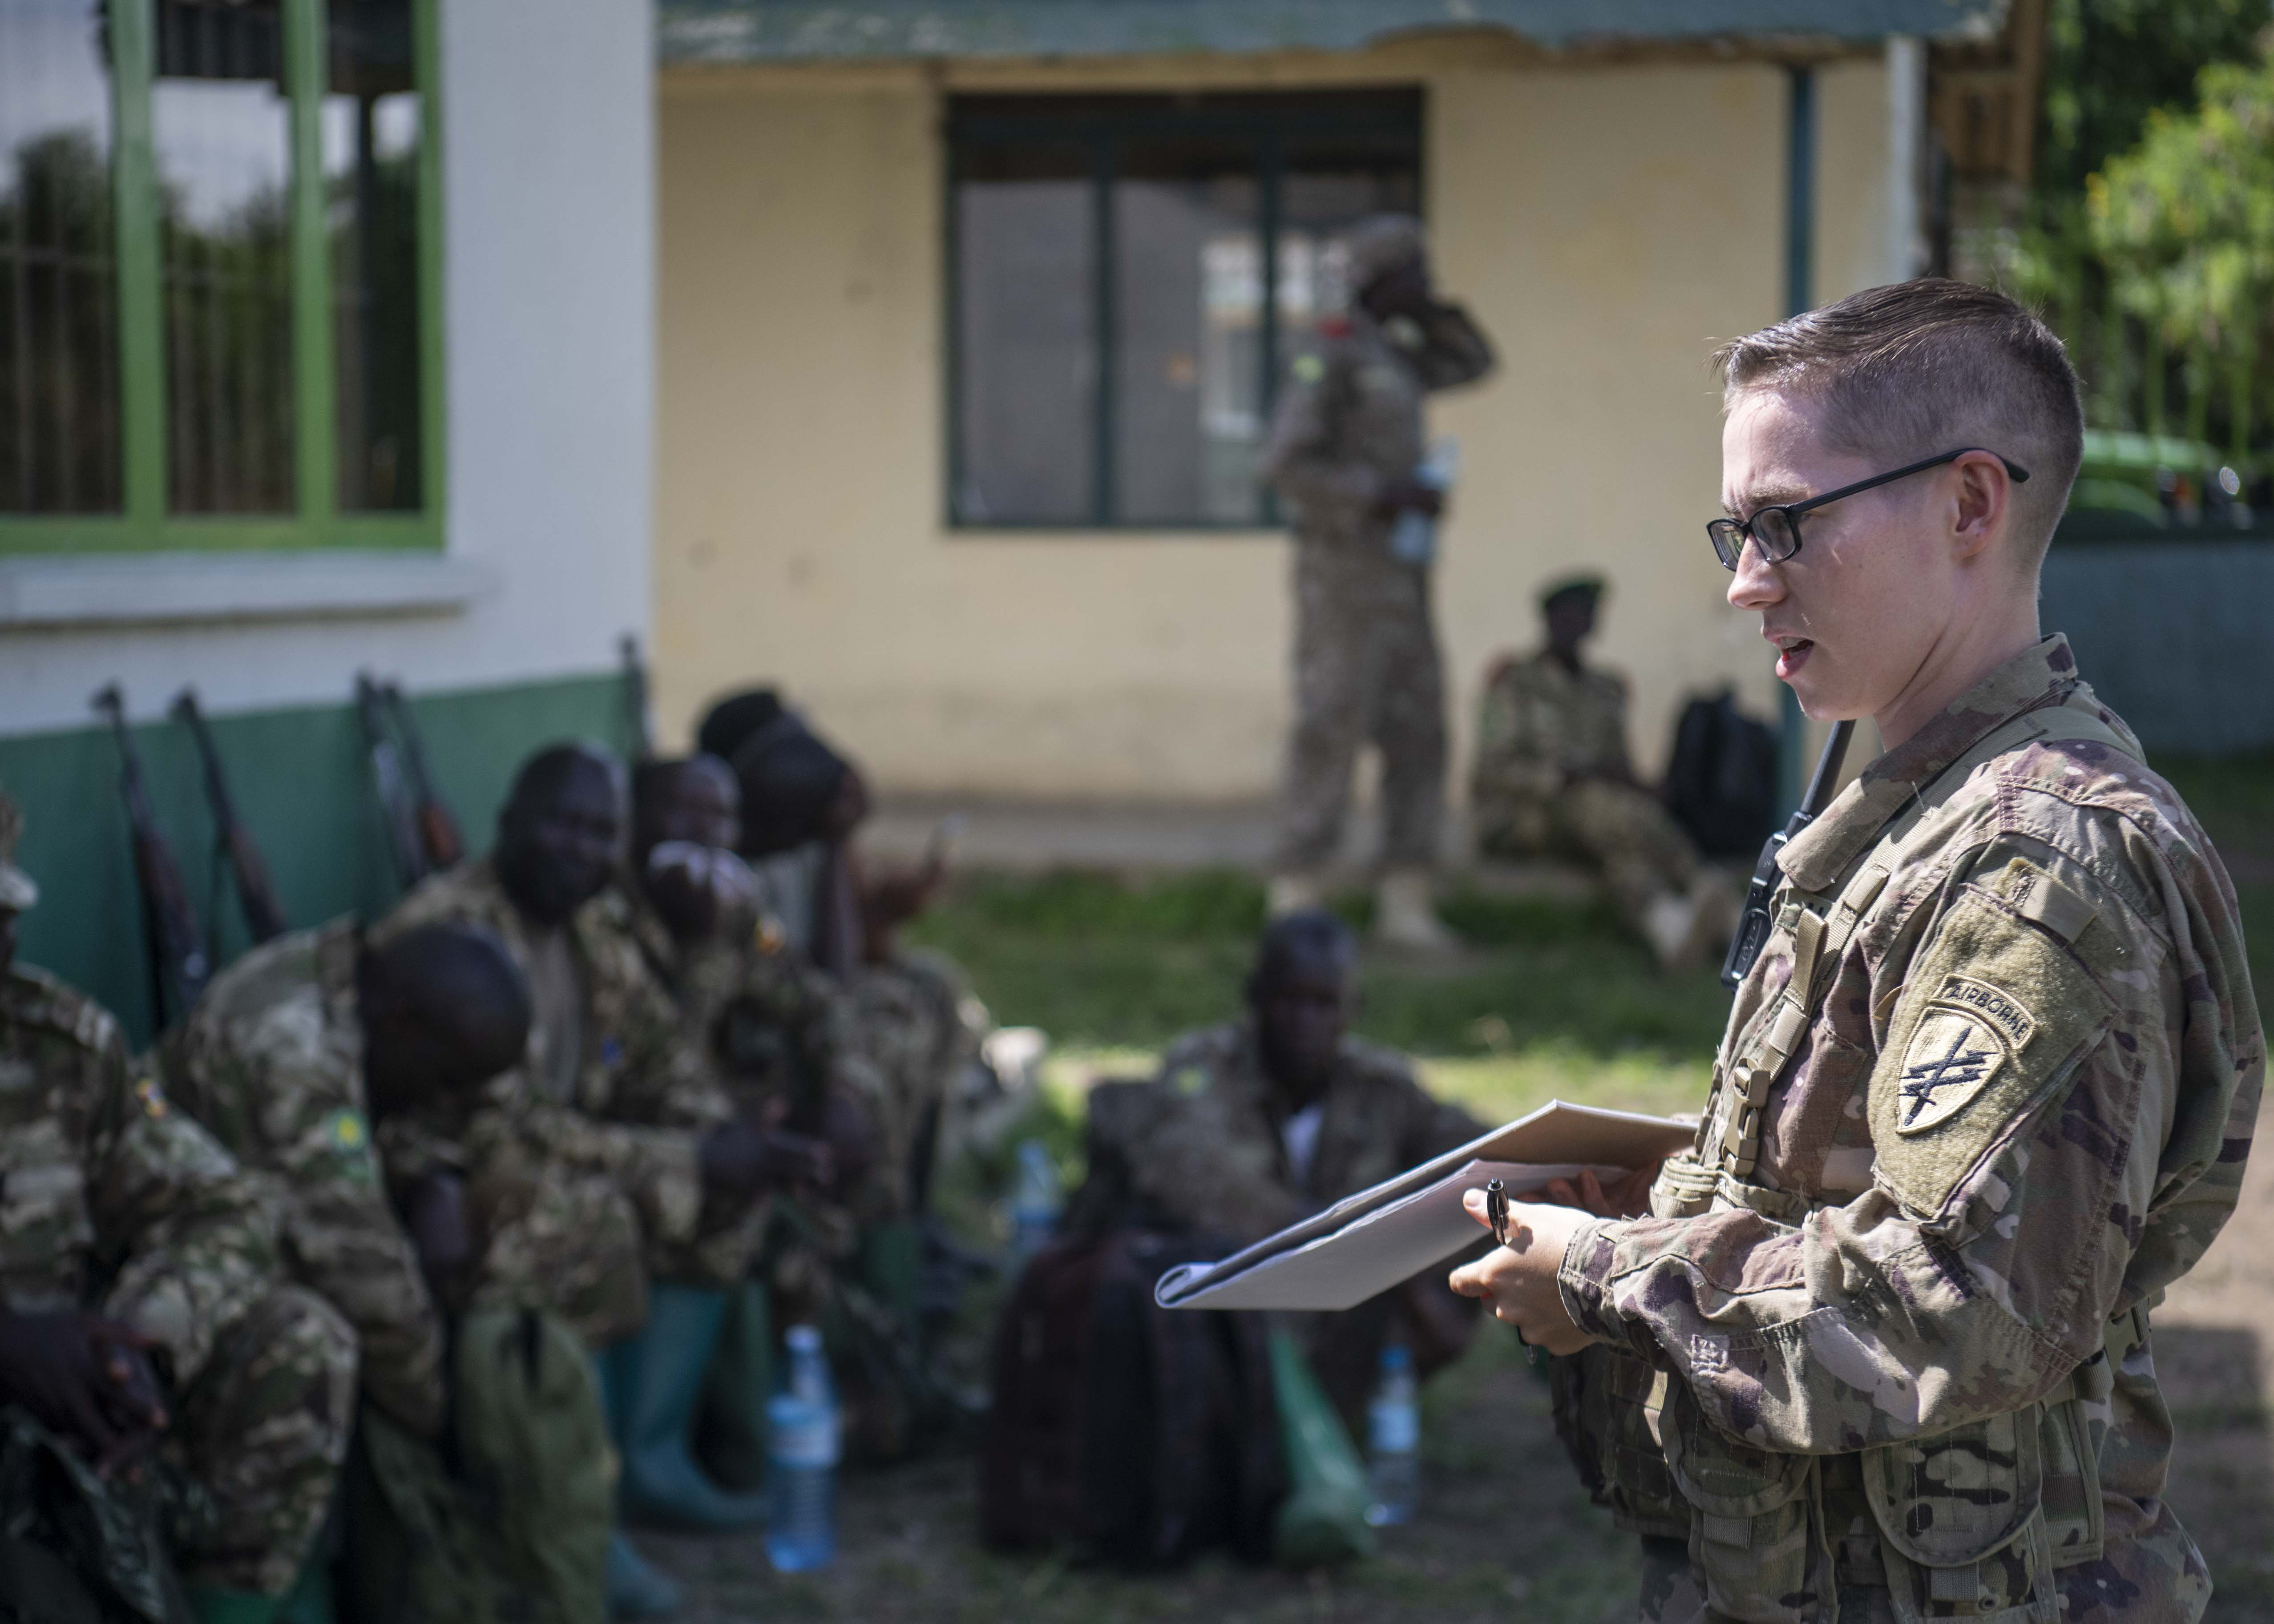 U.S. Army Sgt. Kyri Jones, instructor, 403rd Civil Affairs Battalion assigned to Combined Joint Task Force-Horn of Africa writes a team evaluation during a Counter Illicit Trafficking Junior Leadership Course examination at Queen Elizabeth Park, Uganda, Oct. 10, 2019. Jones was one of six instructors who taught Uganda Wildlife Authority (UWA) Rangers how to conduct land navigation, conduct small unit tactics, respond to wildlife crimes, ethics and medically treat a casualty. (U.S. Air Force photo by Staff Sgt. J.D. Strong II)